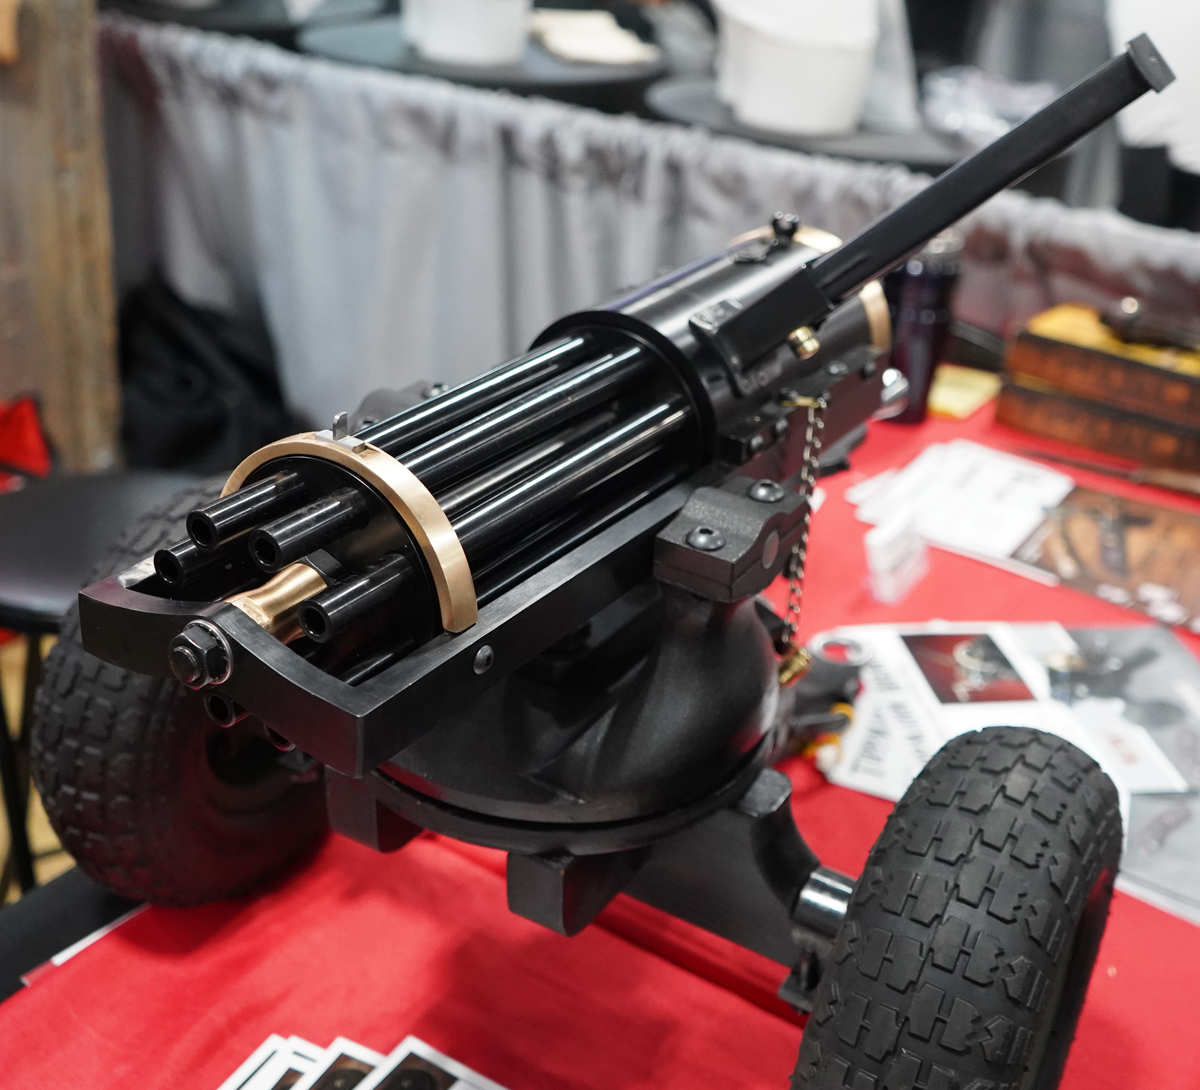 Interesting Products at SHOT Show from Small CompaniesThe